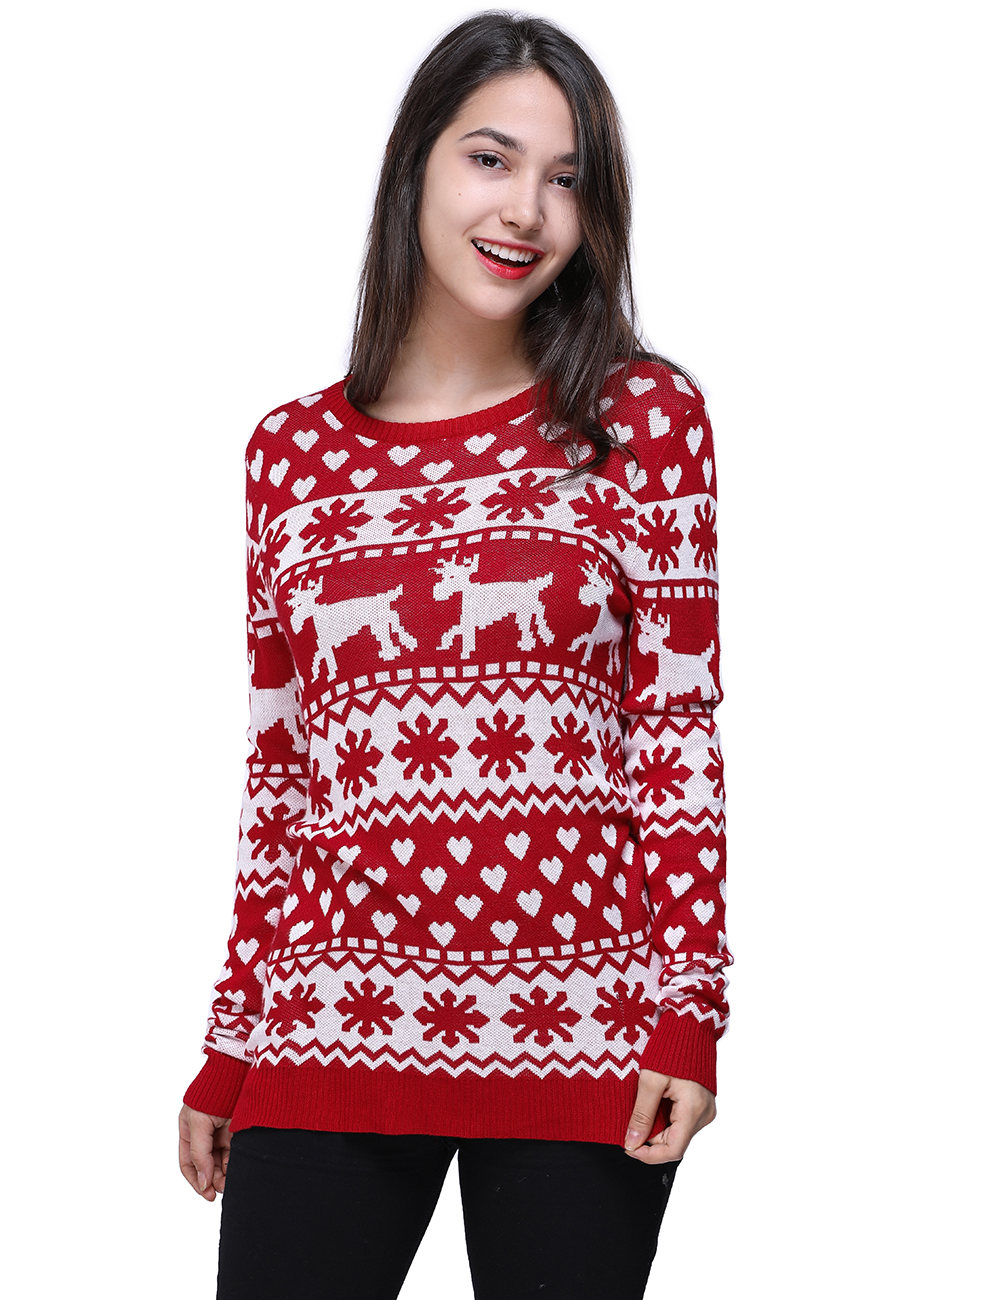 Deer Pullover Casual Long Sleeve Spring Christmas Women Knitted Red Sweater O Neck Deer Print Slim Pullover Sweater Winter Tops